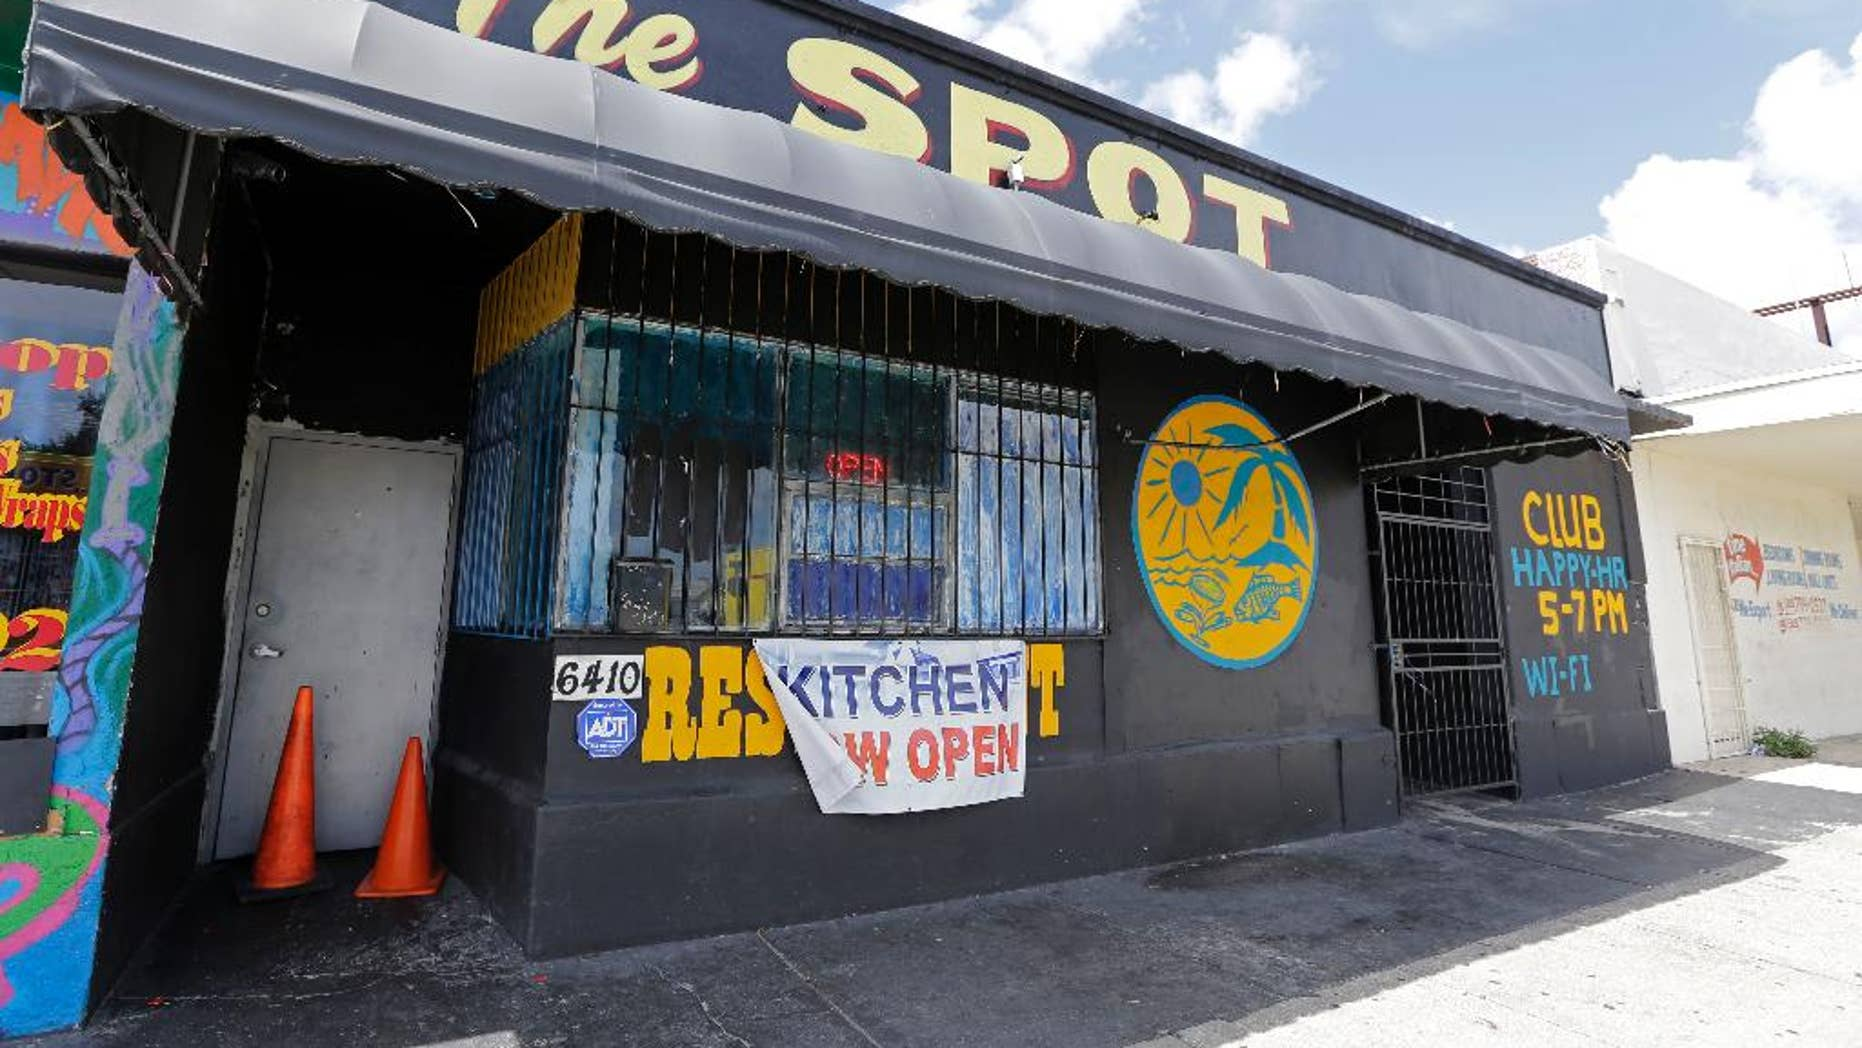 The Spot, a club in Miami, Fla., where at least 15 people were wounded in a shooting early Sunday, Sept. 28, 2014, police said. Miami police said gunfire erupted around 1 a.m. Sunday at the club. It's unclear how many shooters there were and what caused the shooting.  (AP Photo/Alan Diaz)